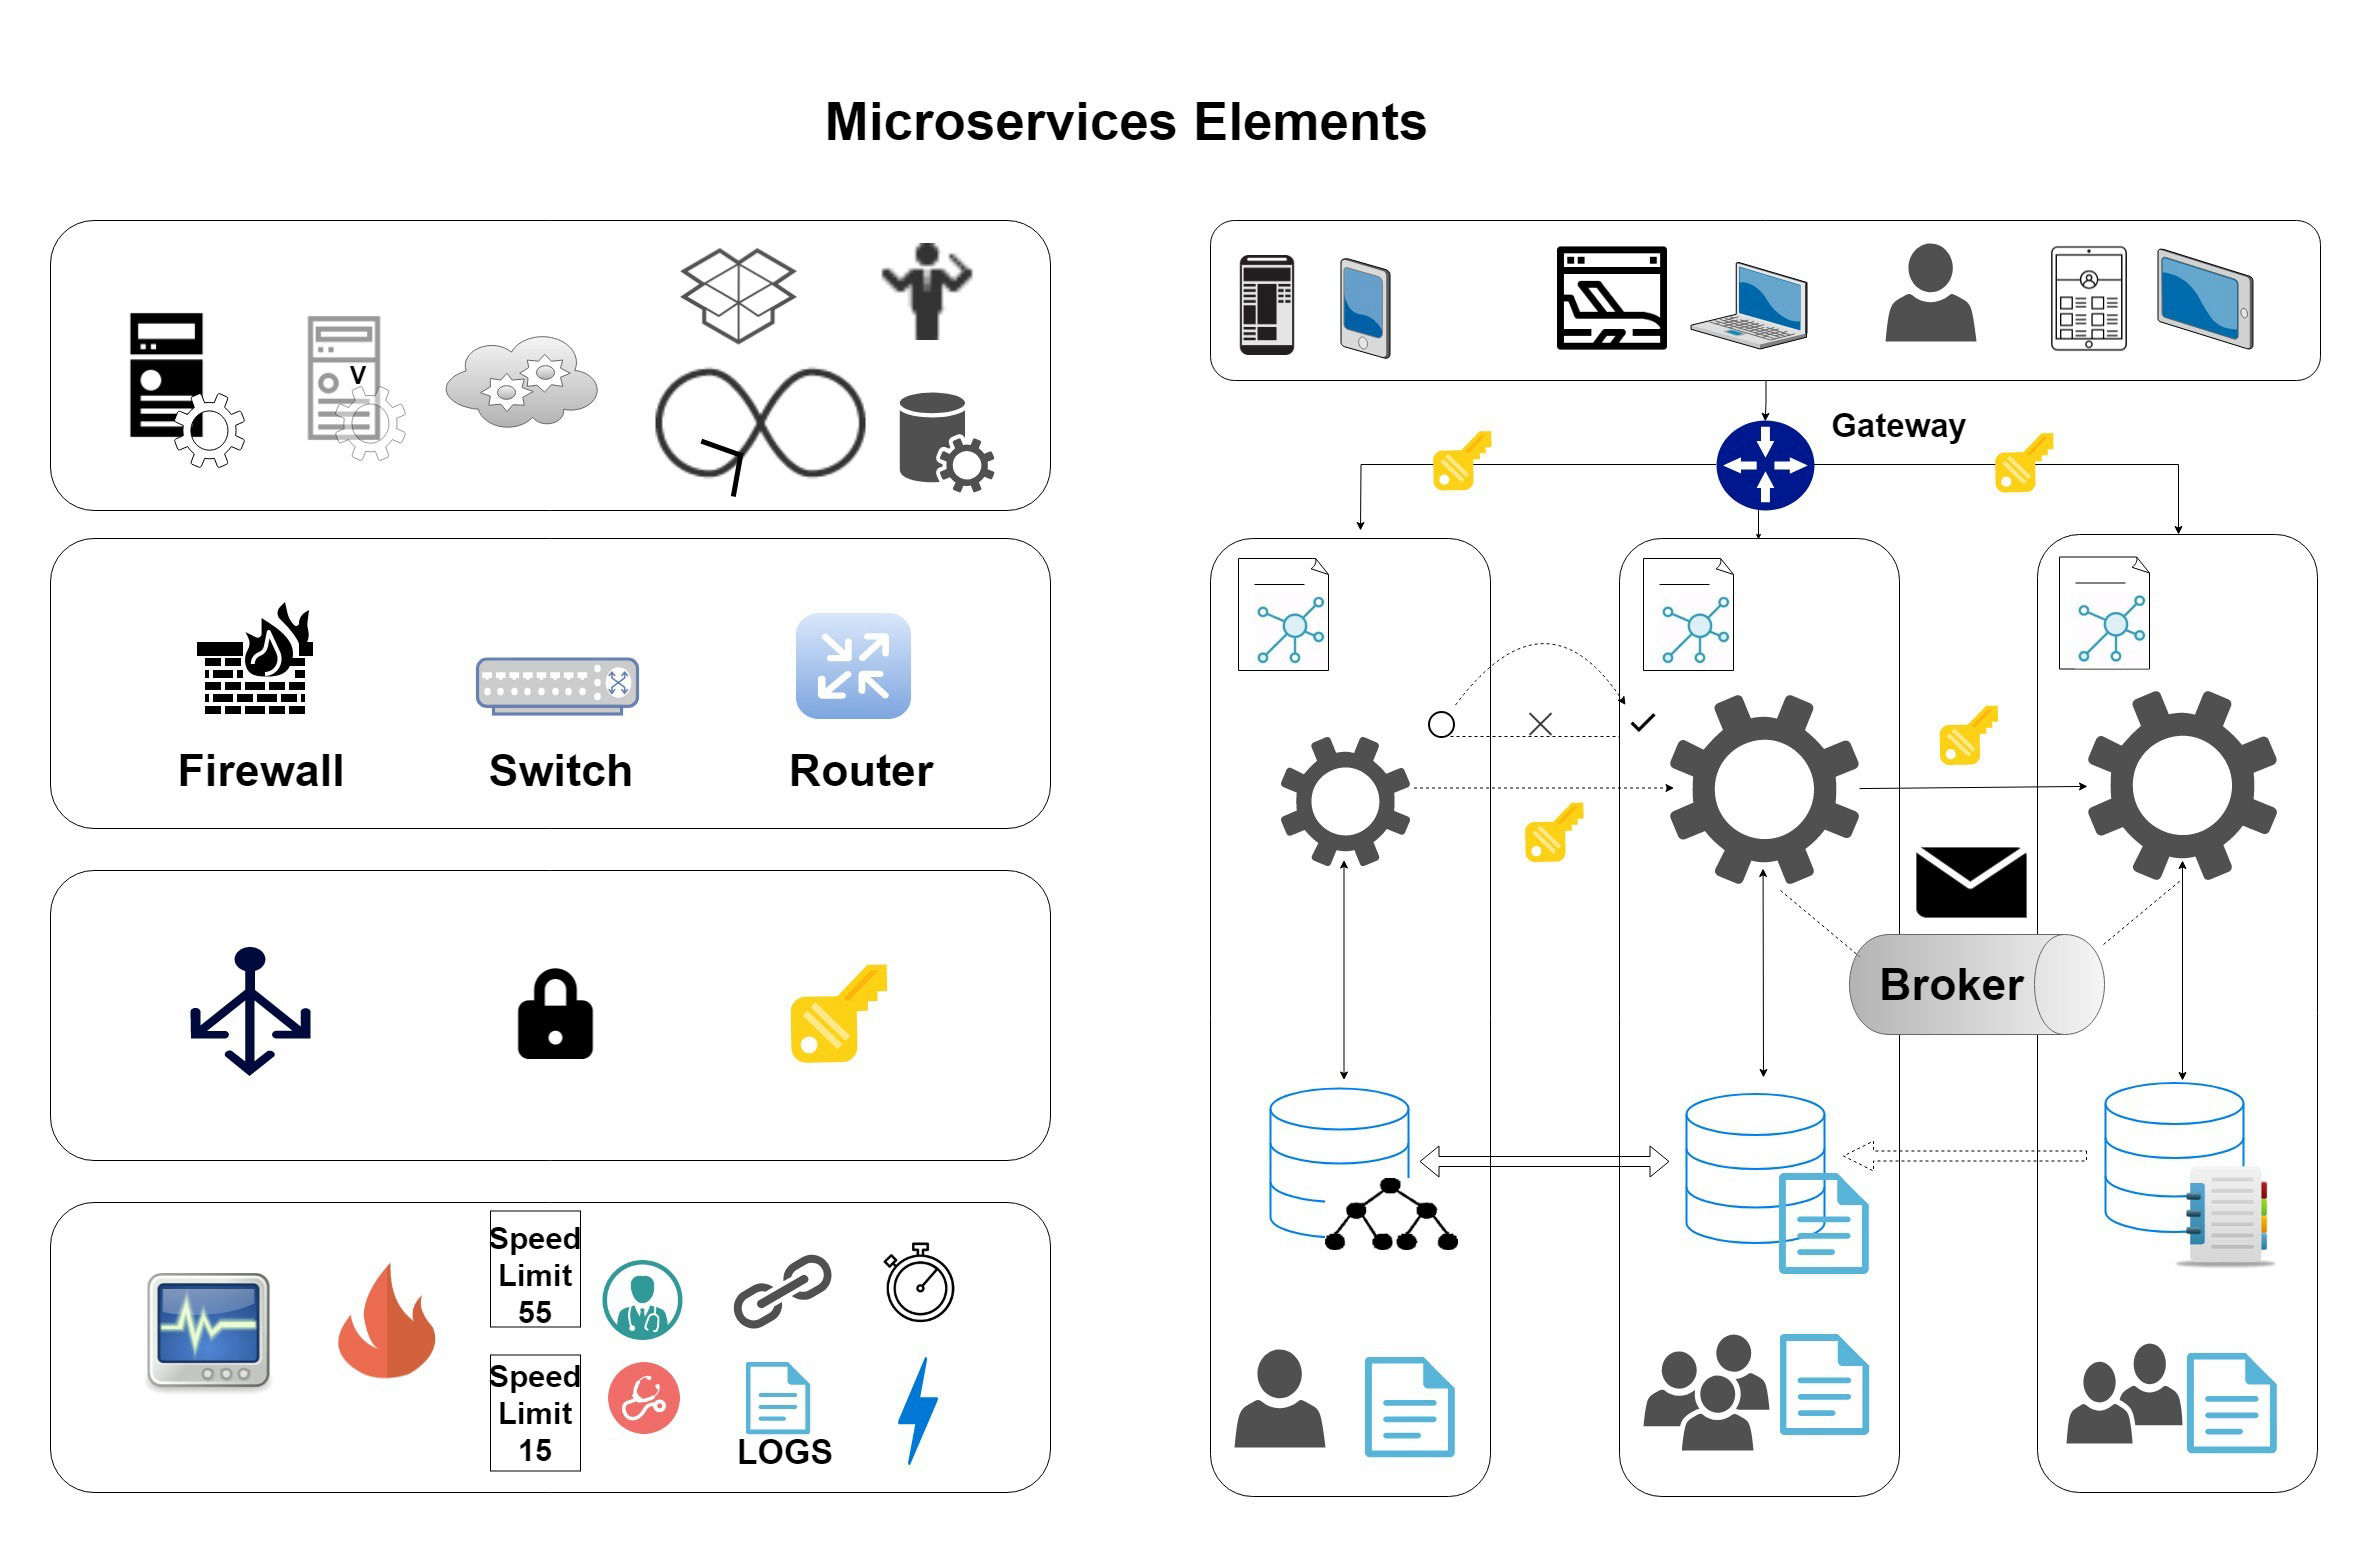 Microservices Elements